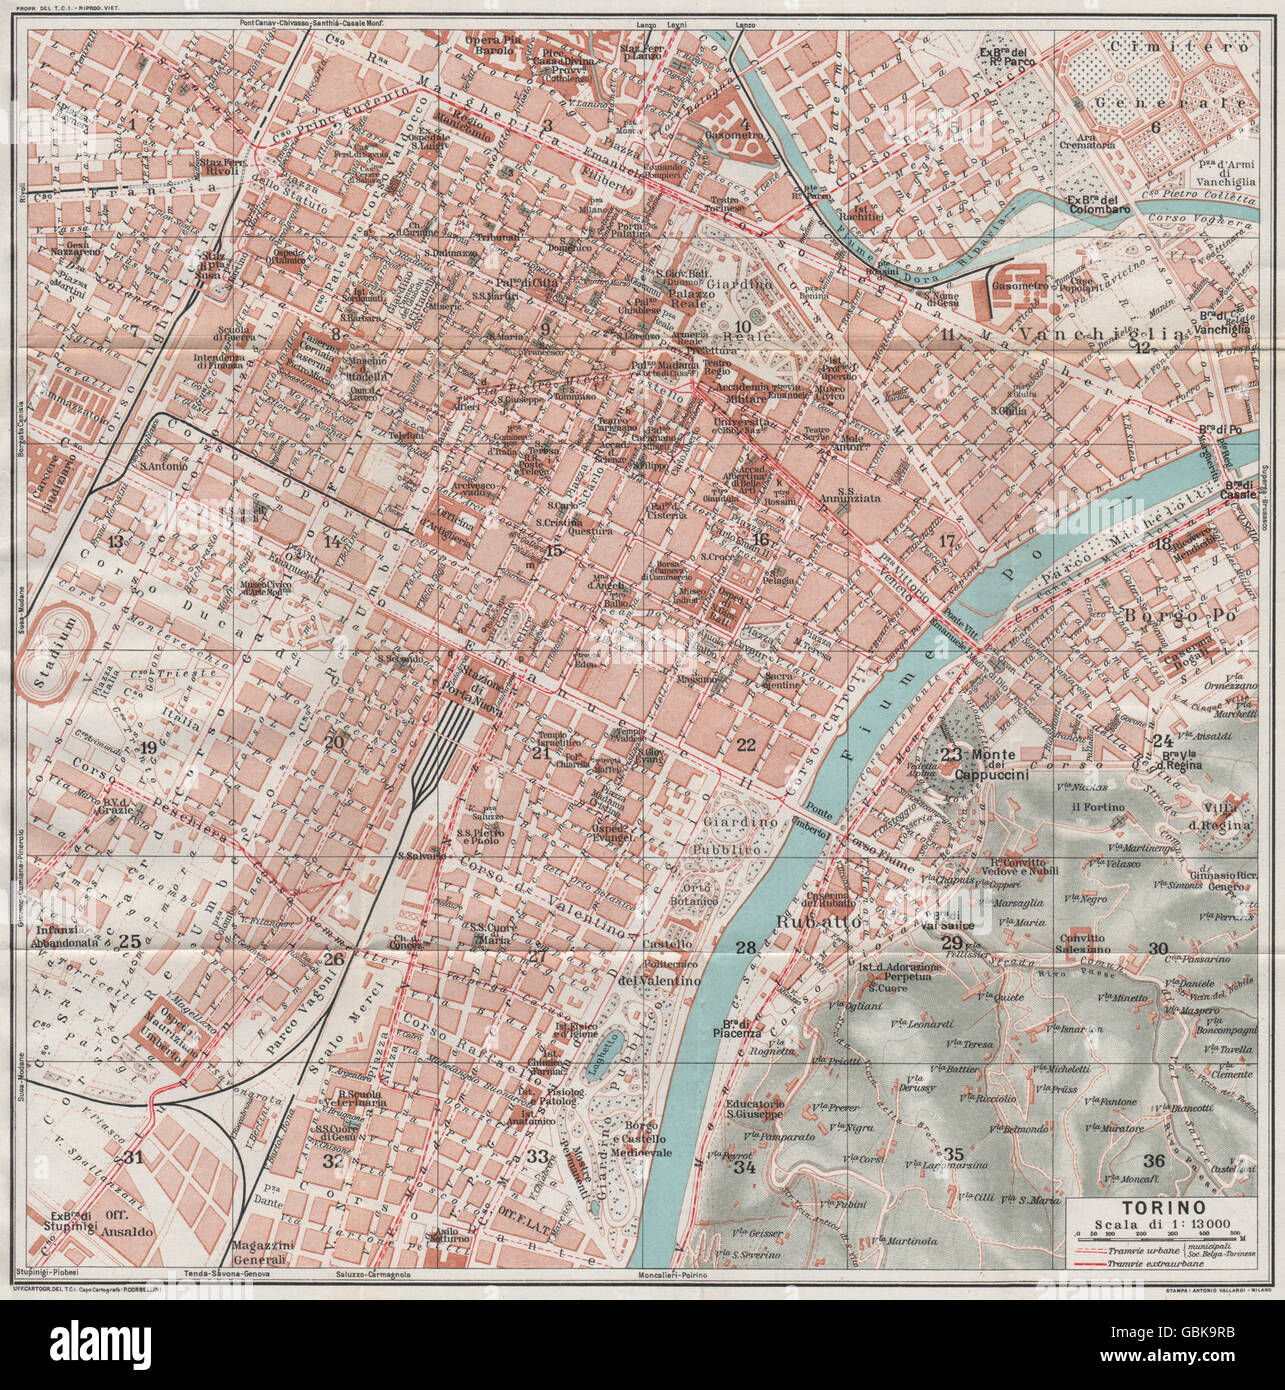 Map Of Italy Torino.Turin Torino Vintage Town City Map Plan Italy 1924 Stock Photo